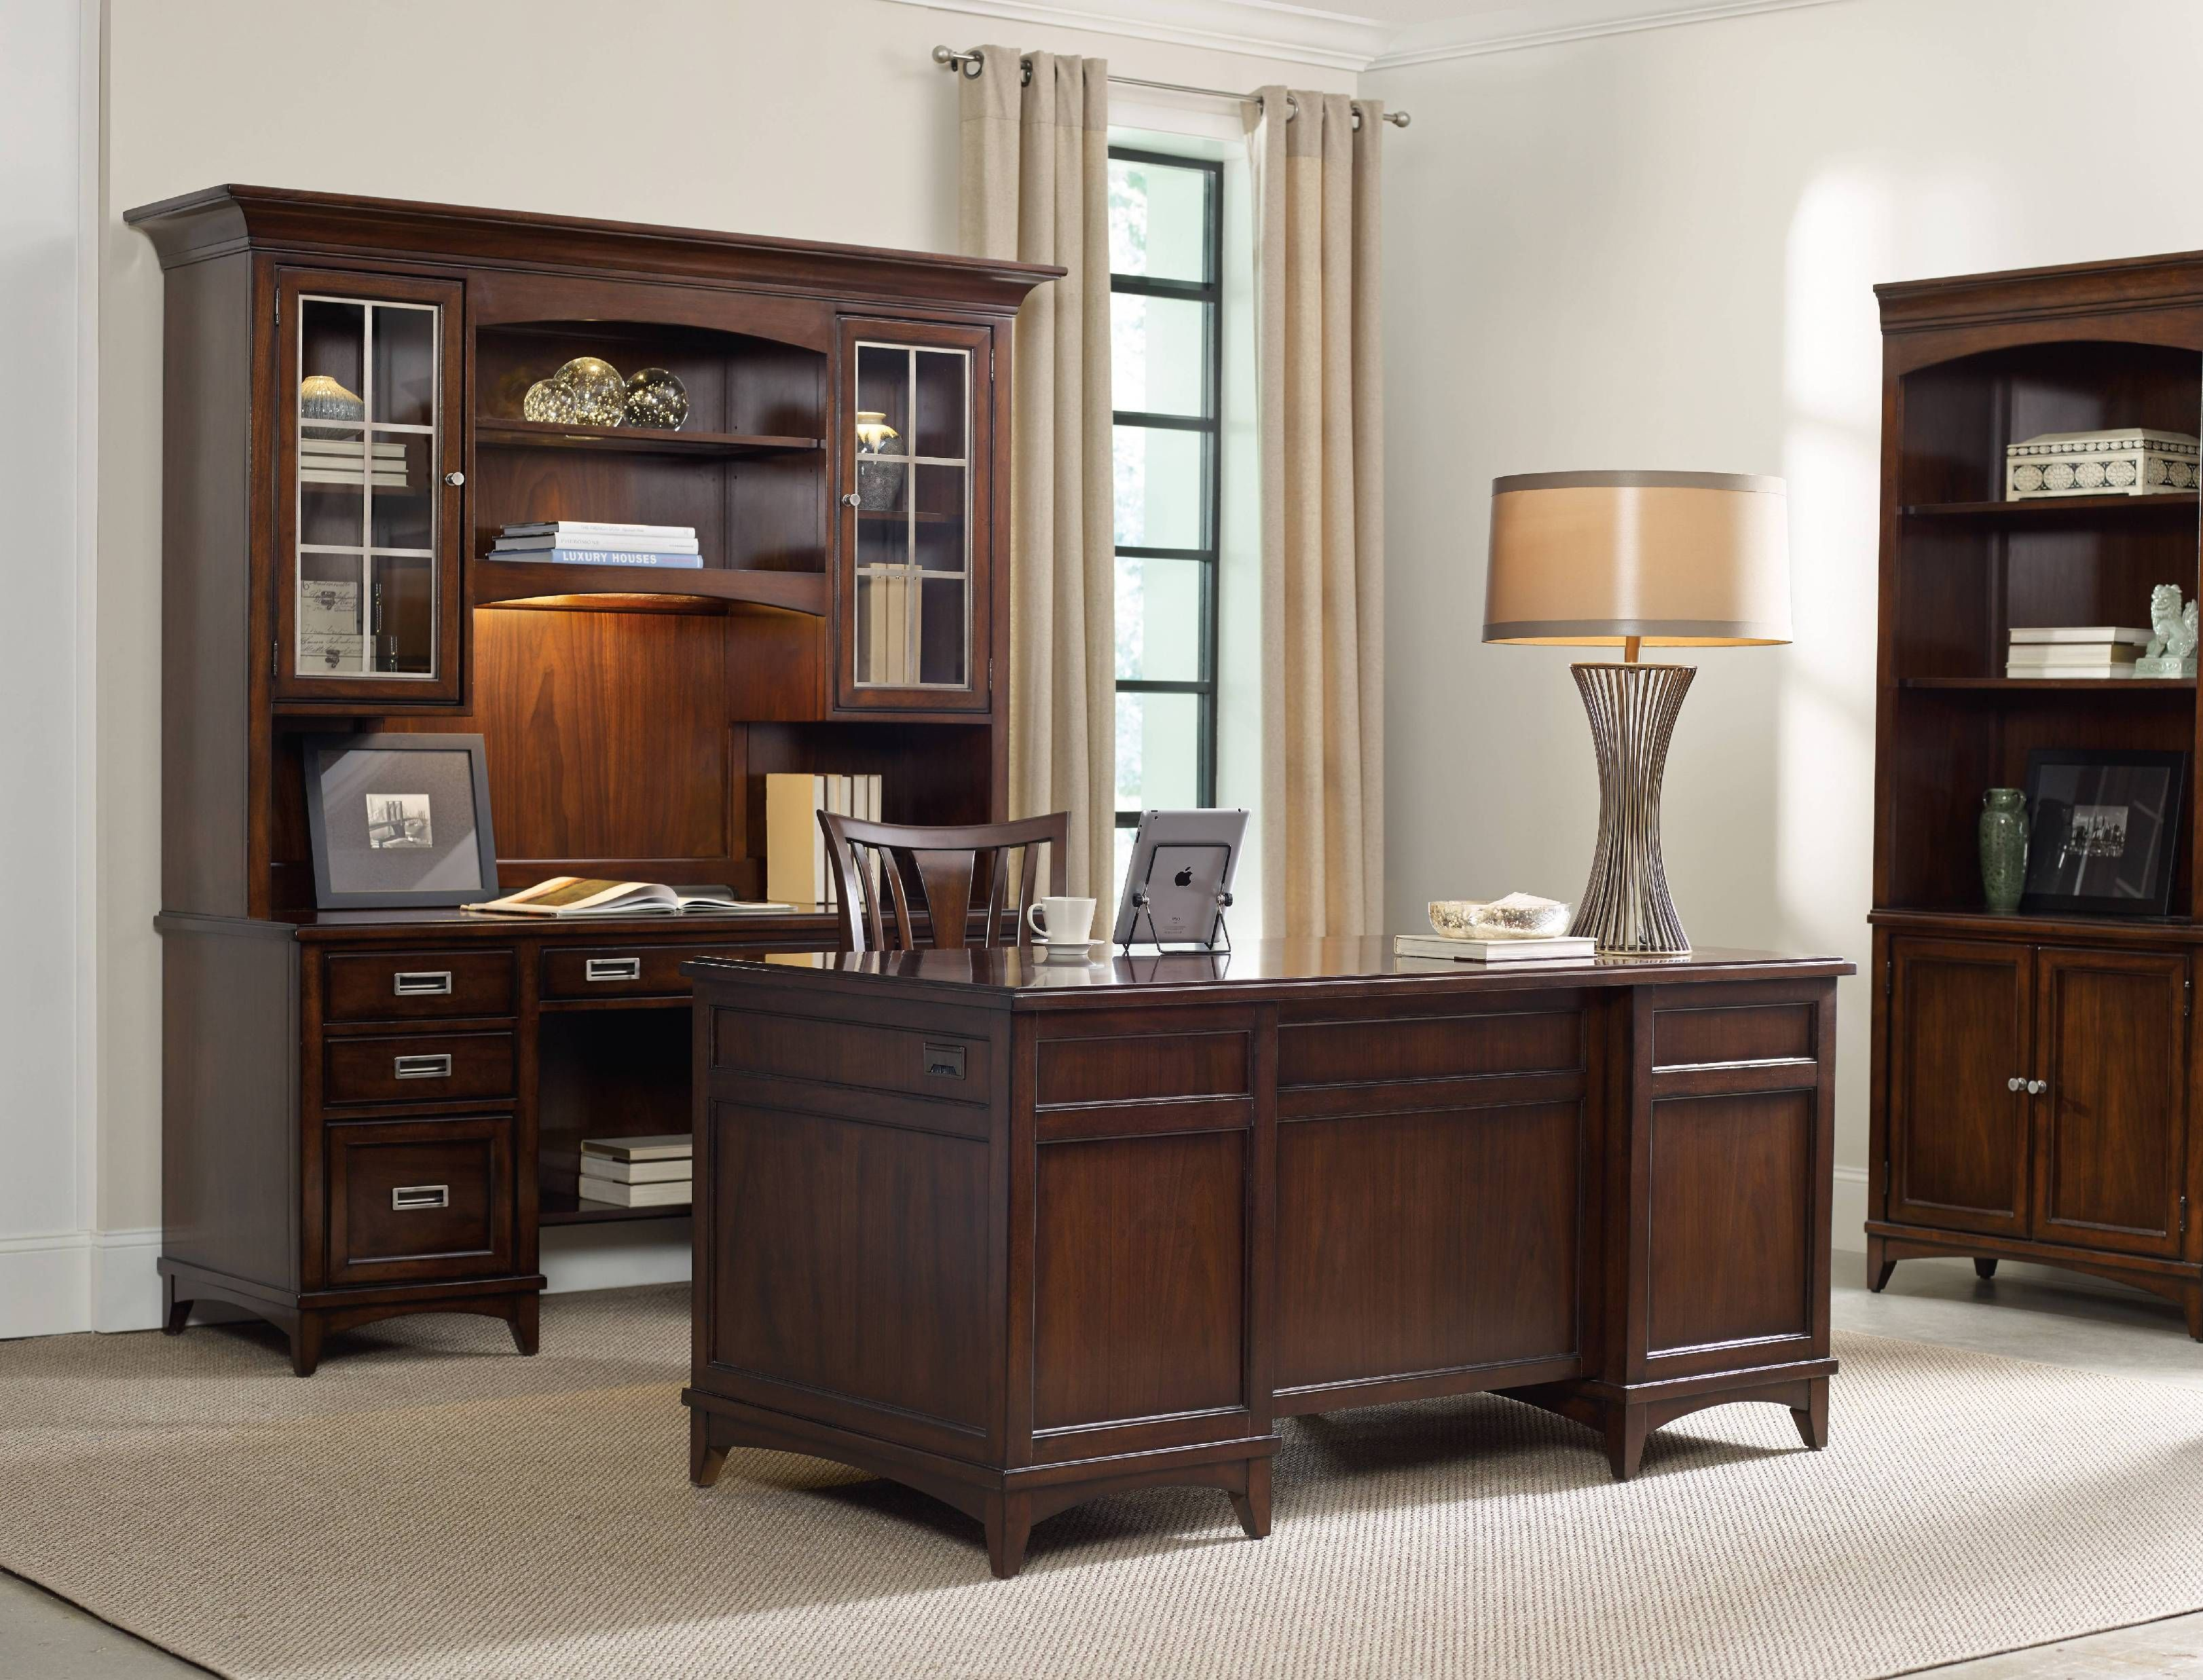 Furniture Home Office Laude Executive Desk 5167 10562 Ramsey Company Covington